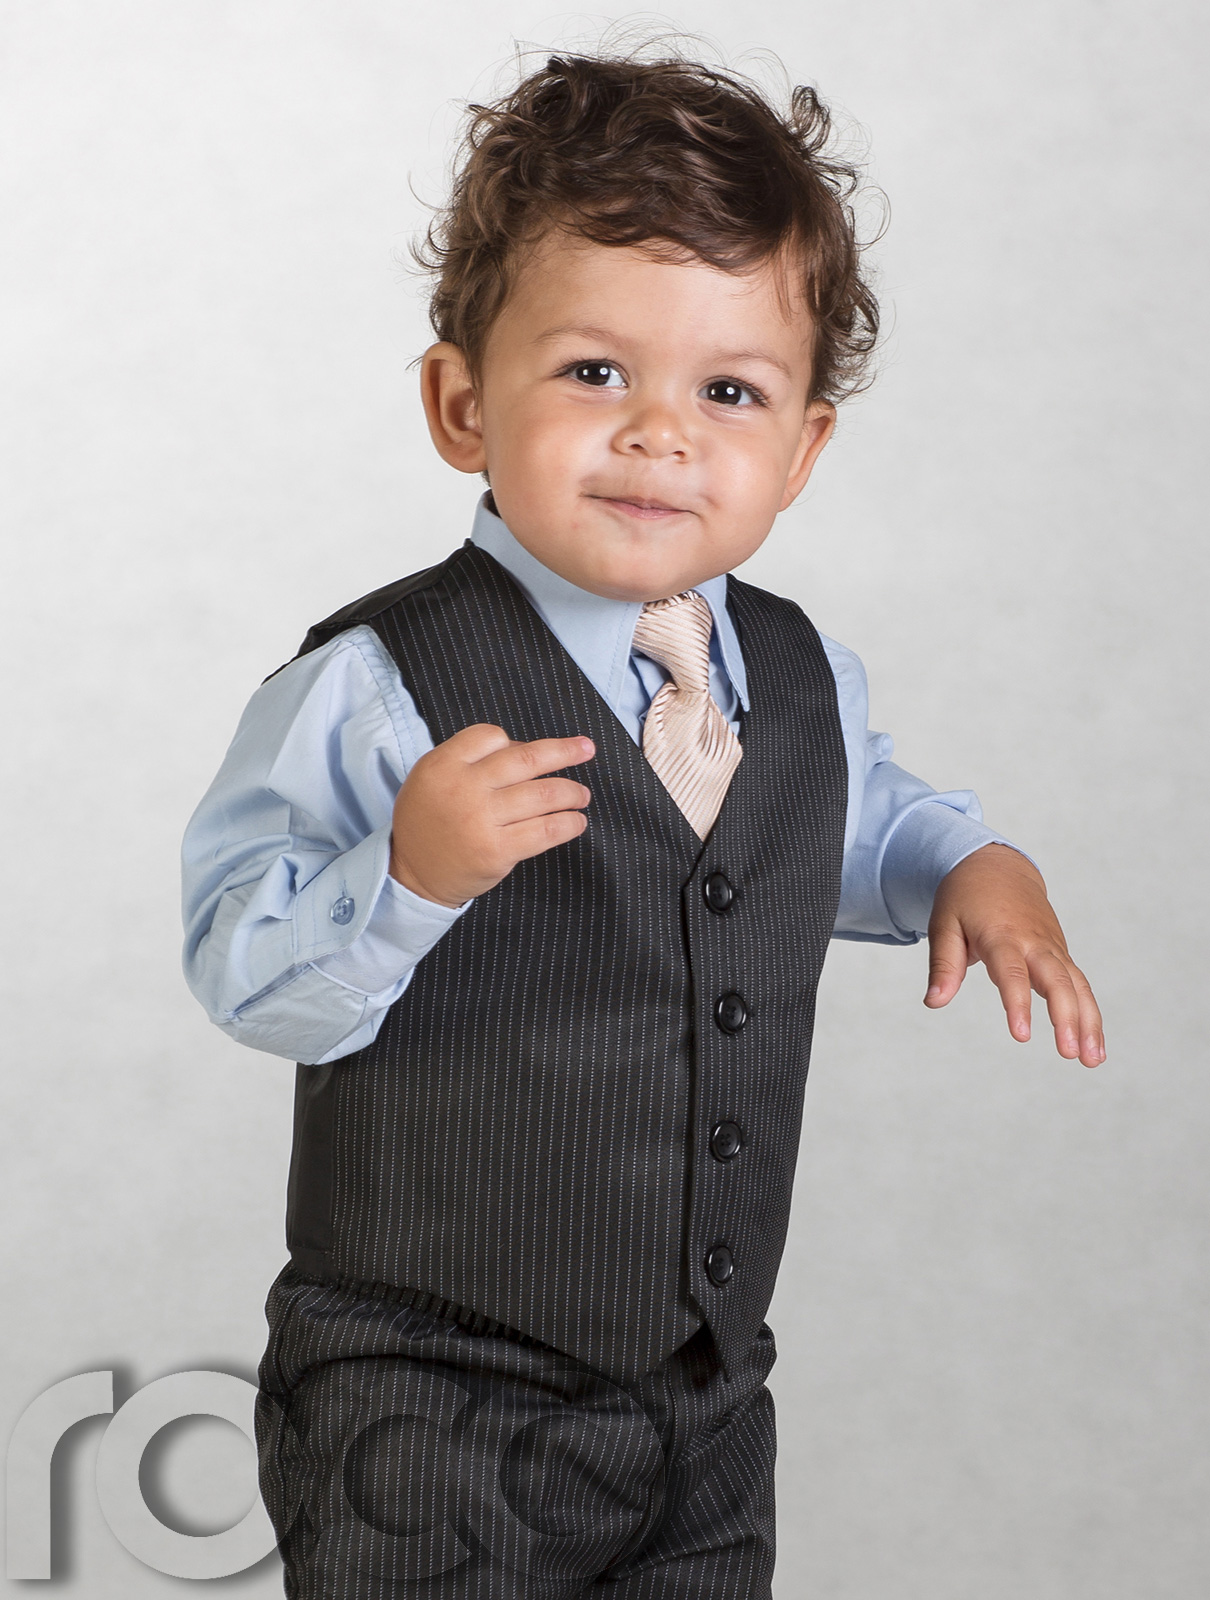 Find newborn baby clothing for boys at OshKosh. Get free shipping on baby boy clothes from our one-stop shop today.